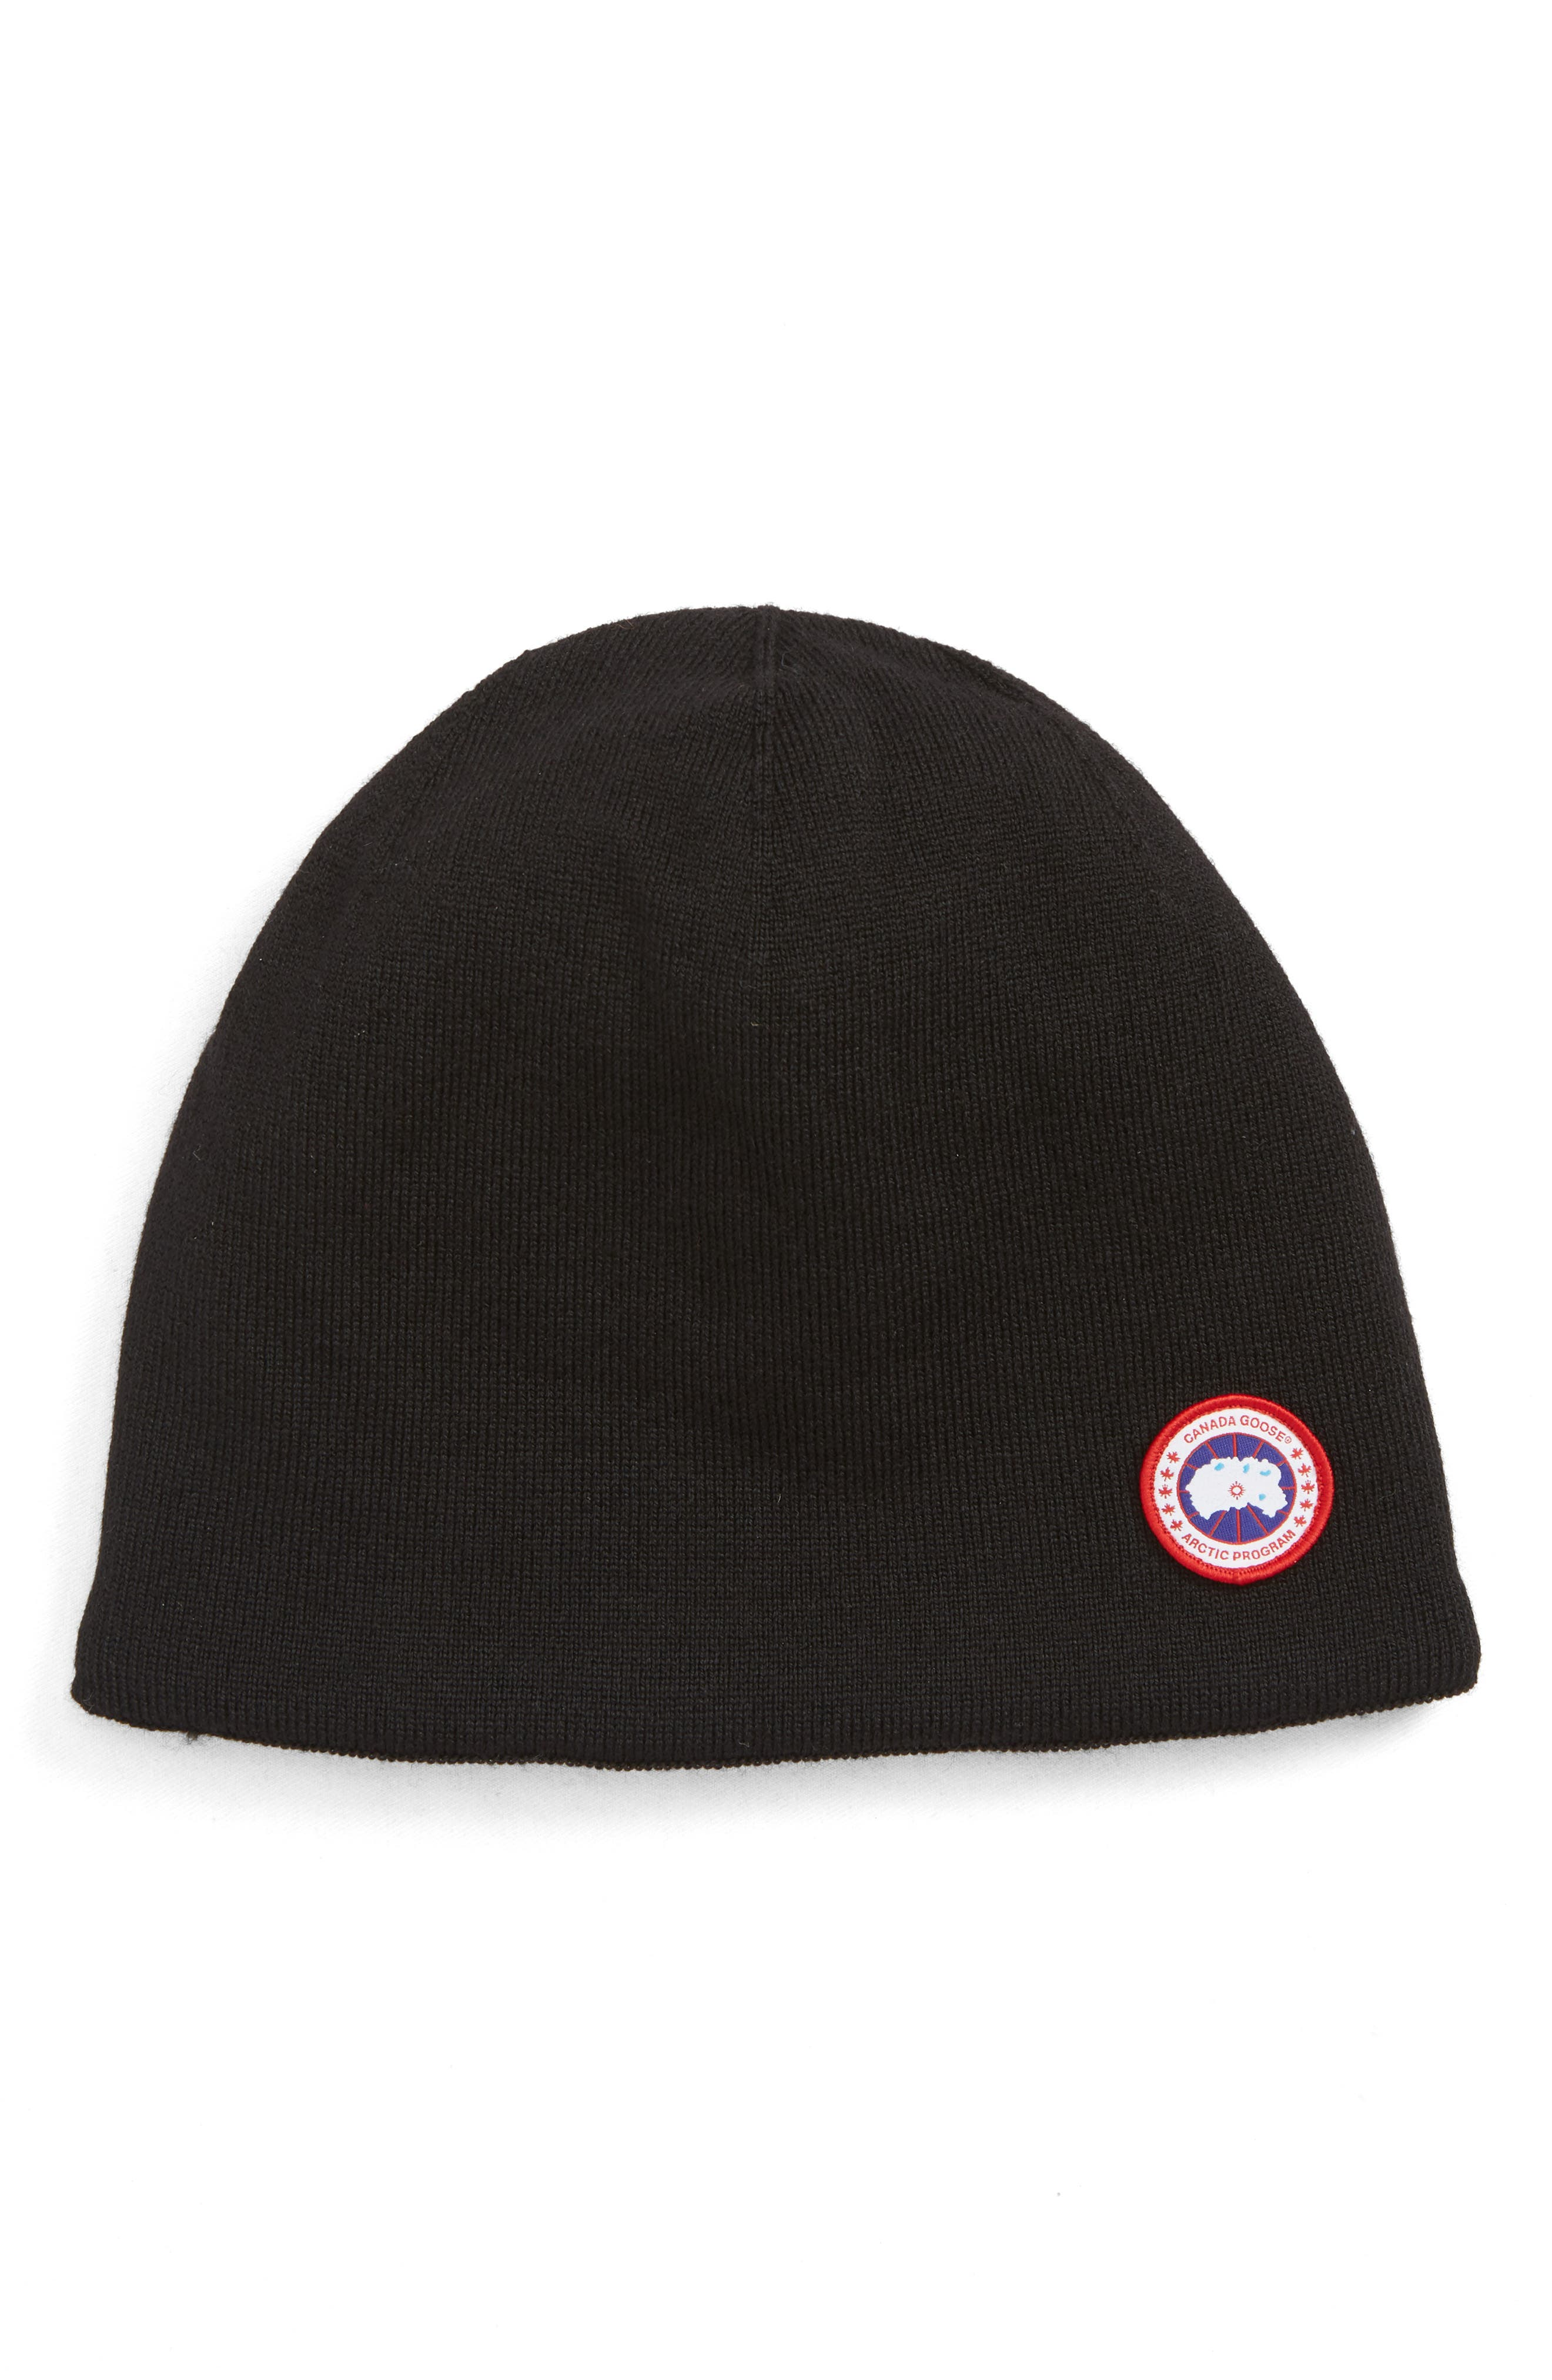 CANADA GOOSE,                             Standard Wool Blend Beanie,                             Main thumbnail 1, color,                             BLACK